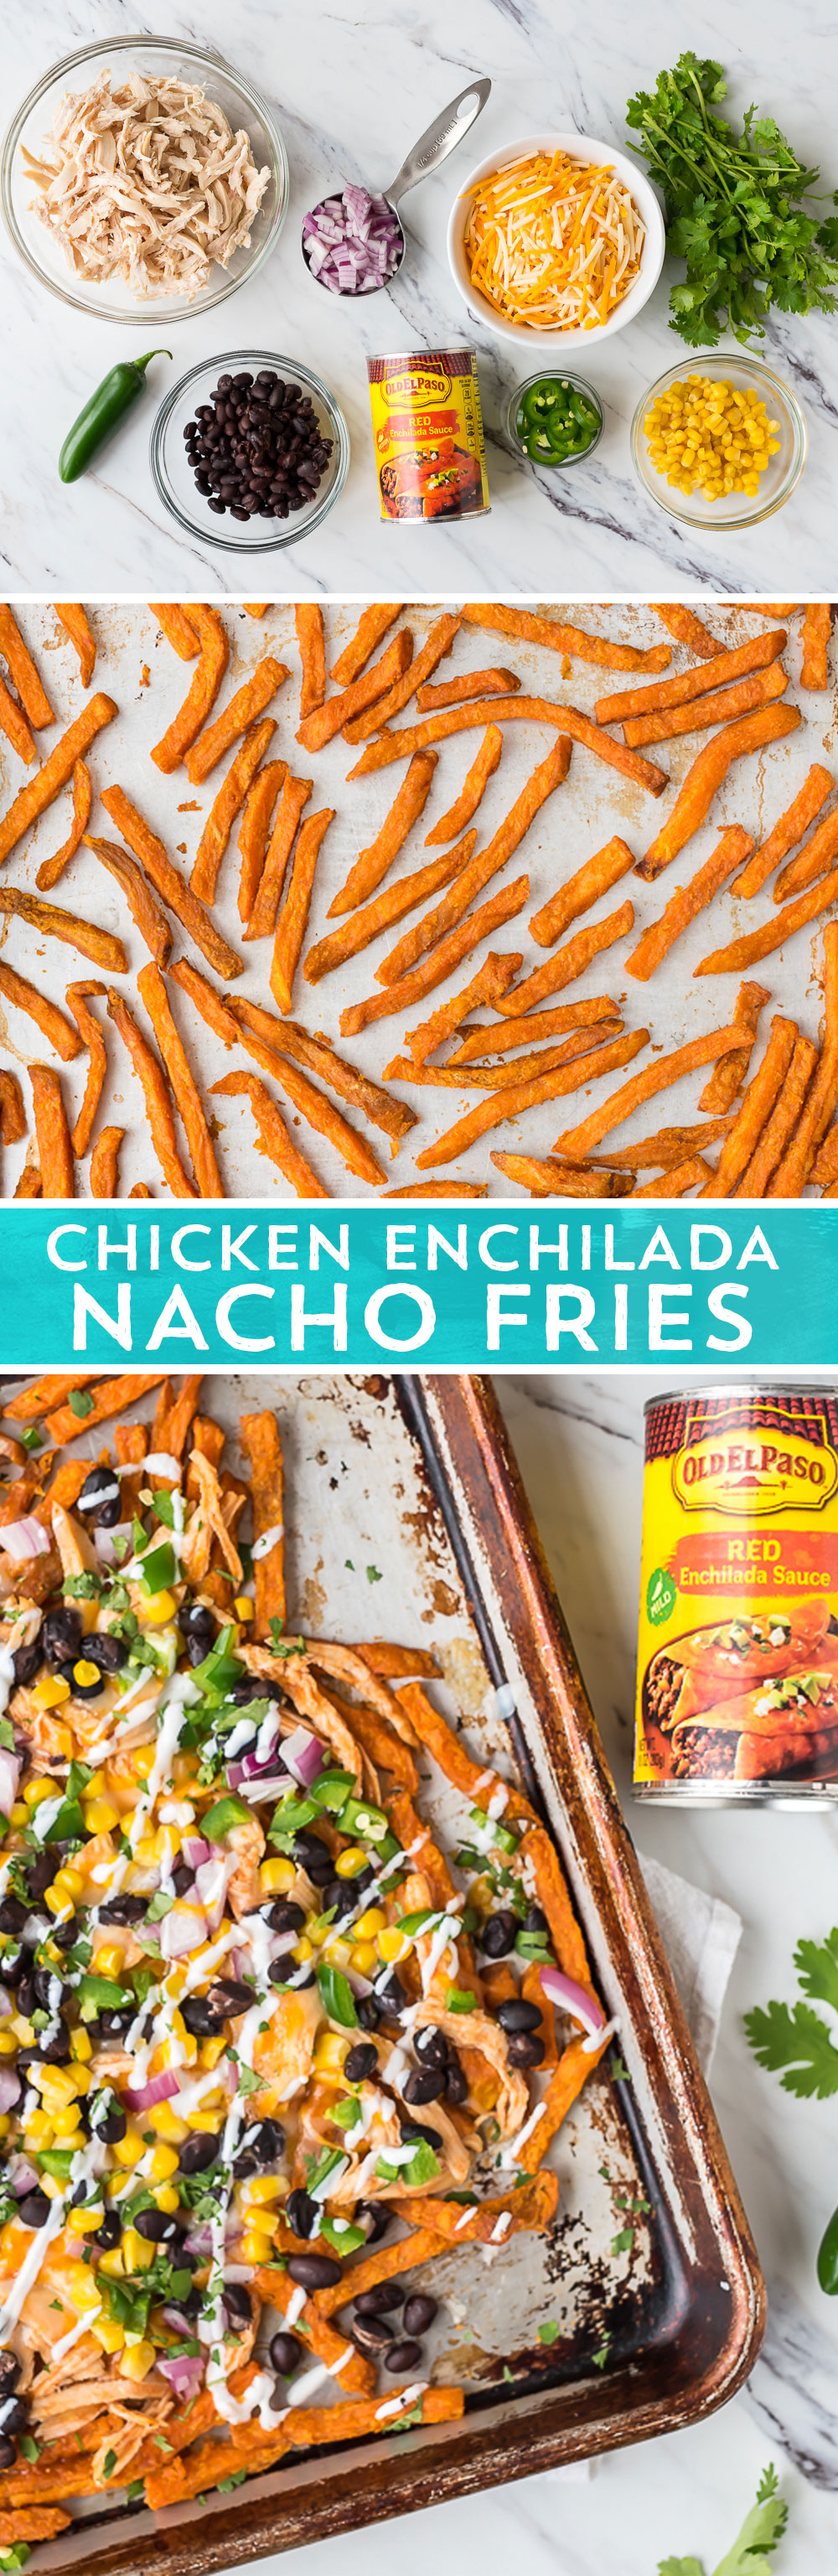 Classic enchilada ingredients and sweet potato fries come